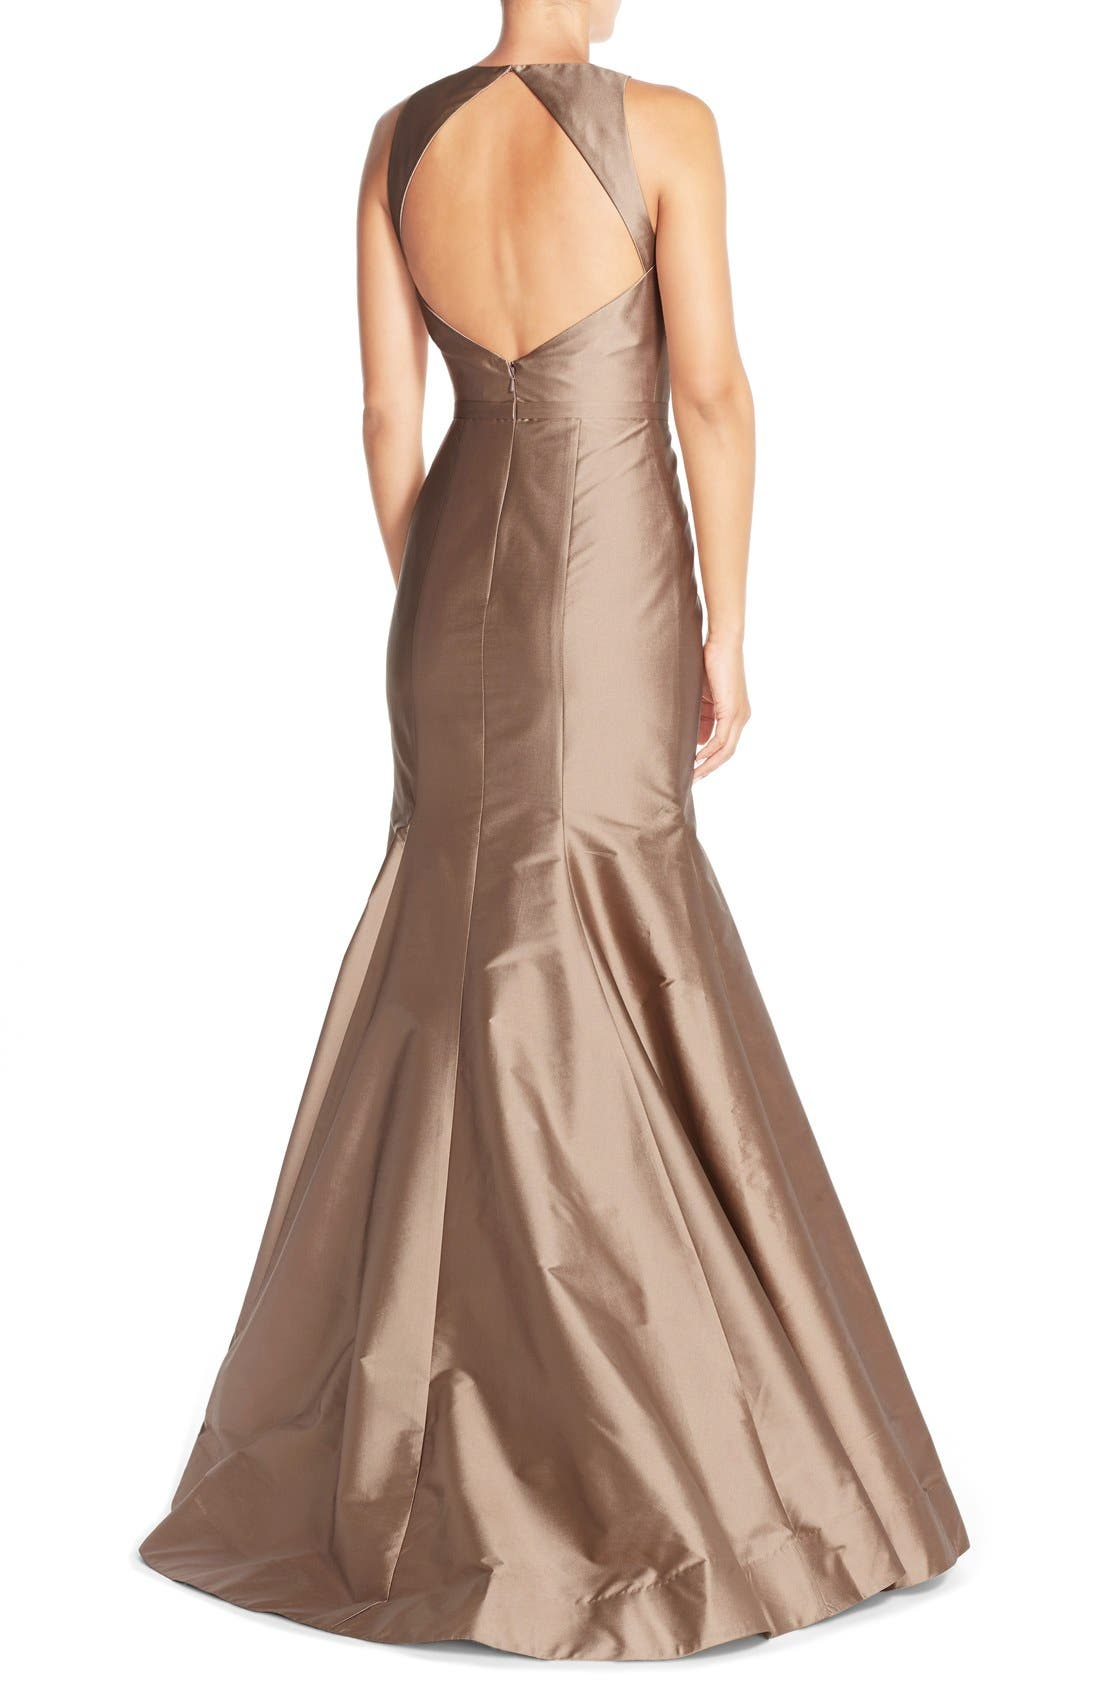 MONIQUE LHUILLIER BRIDESMAIDS, Back Cutout Taffeta Mermaid Gown, Alternate thumbnail 2, color, 909